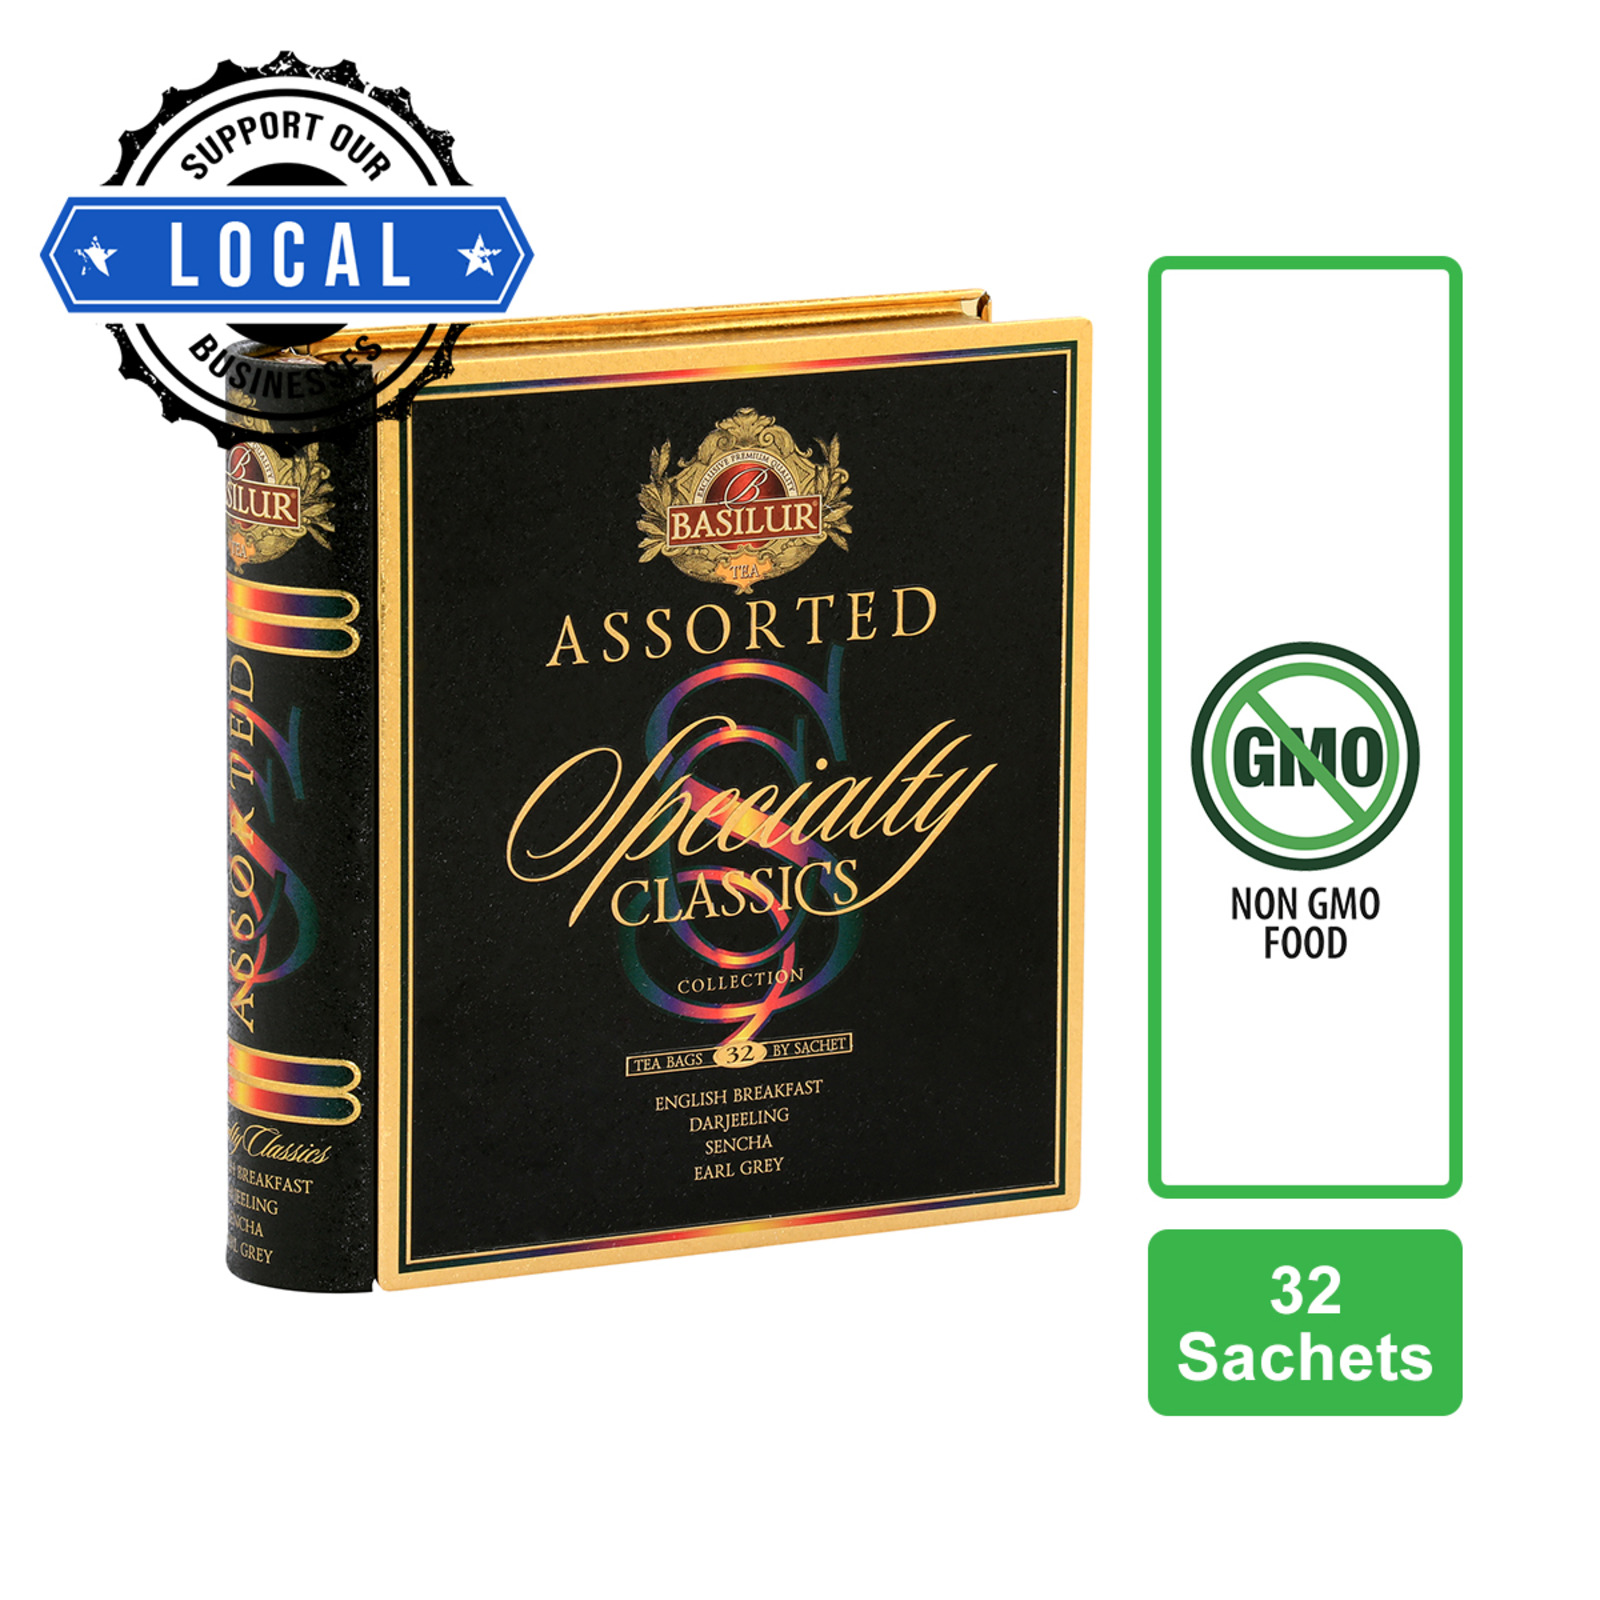 Basilur Assorted Book - Specialty Classics Tea